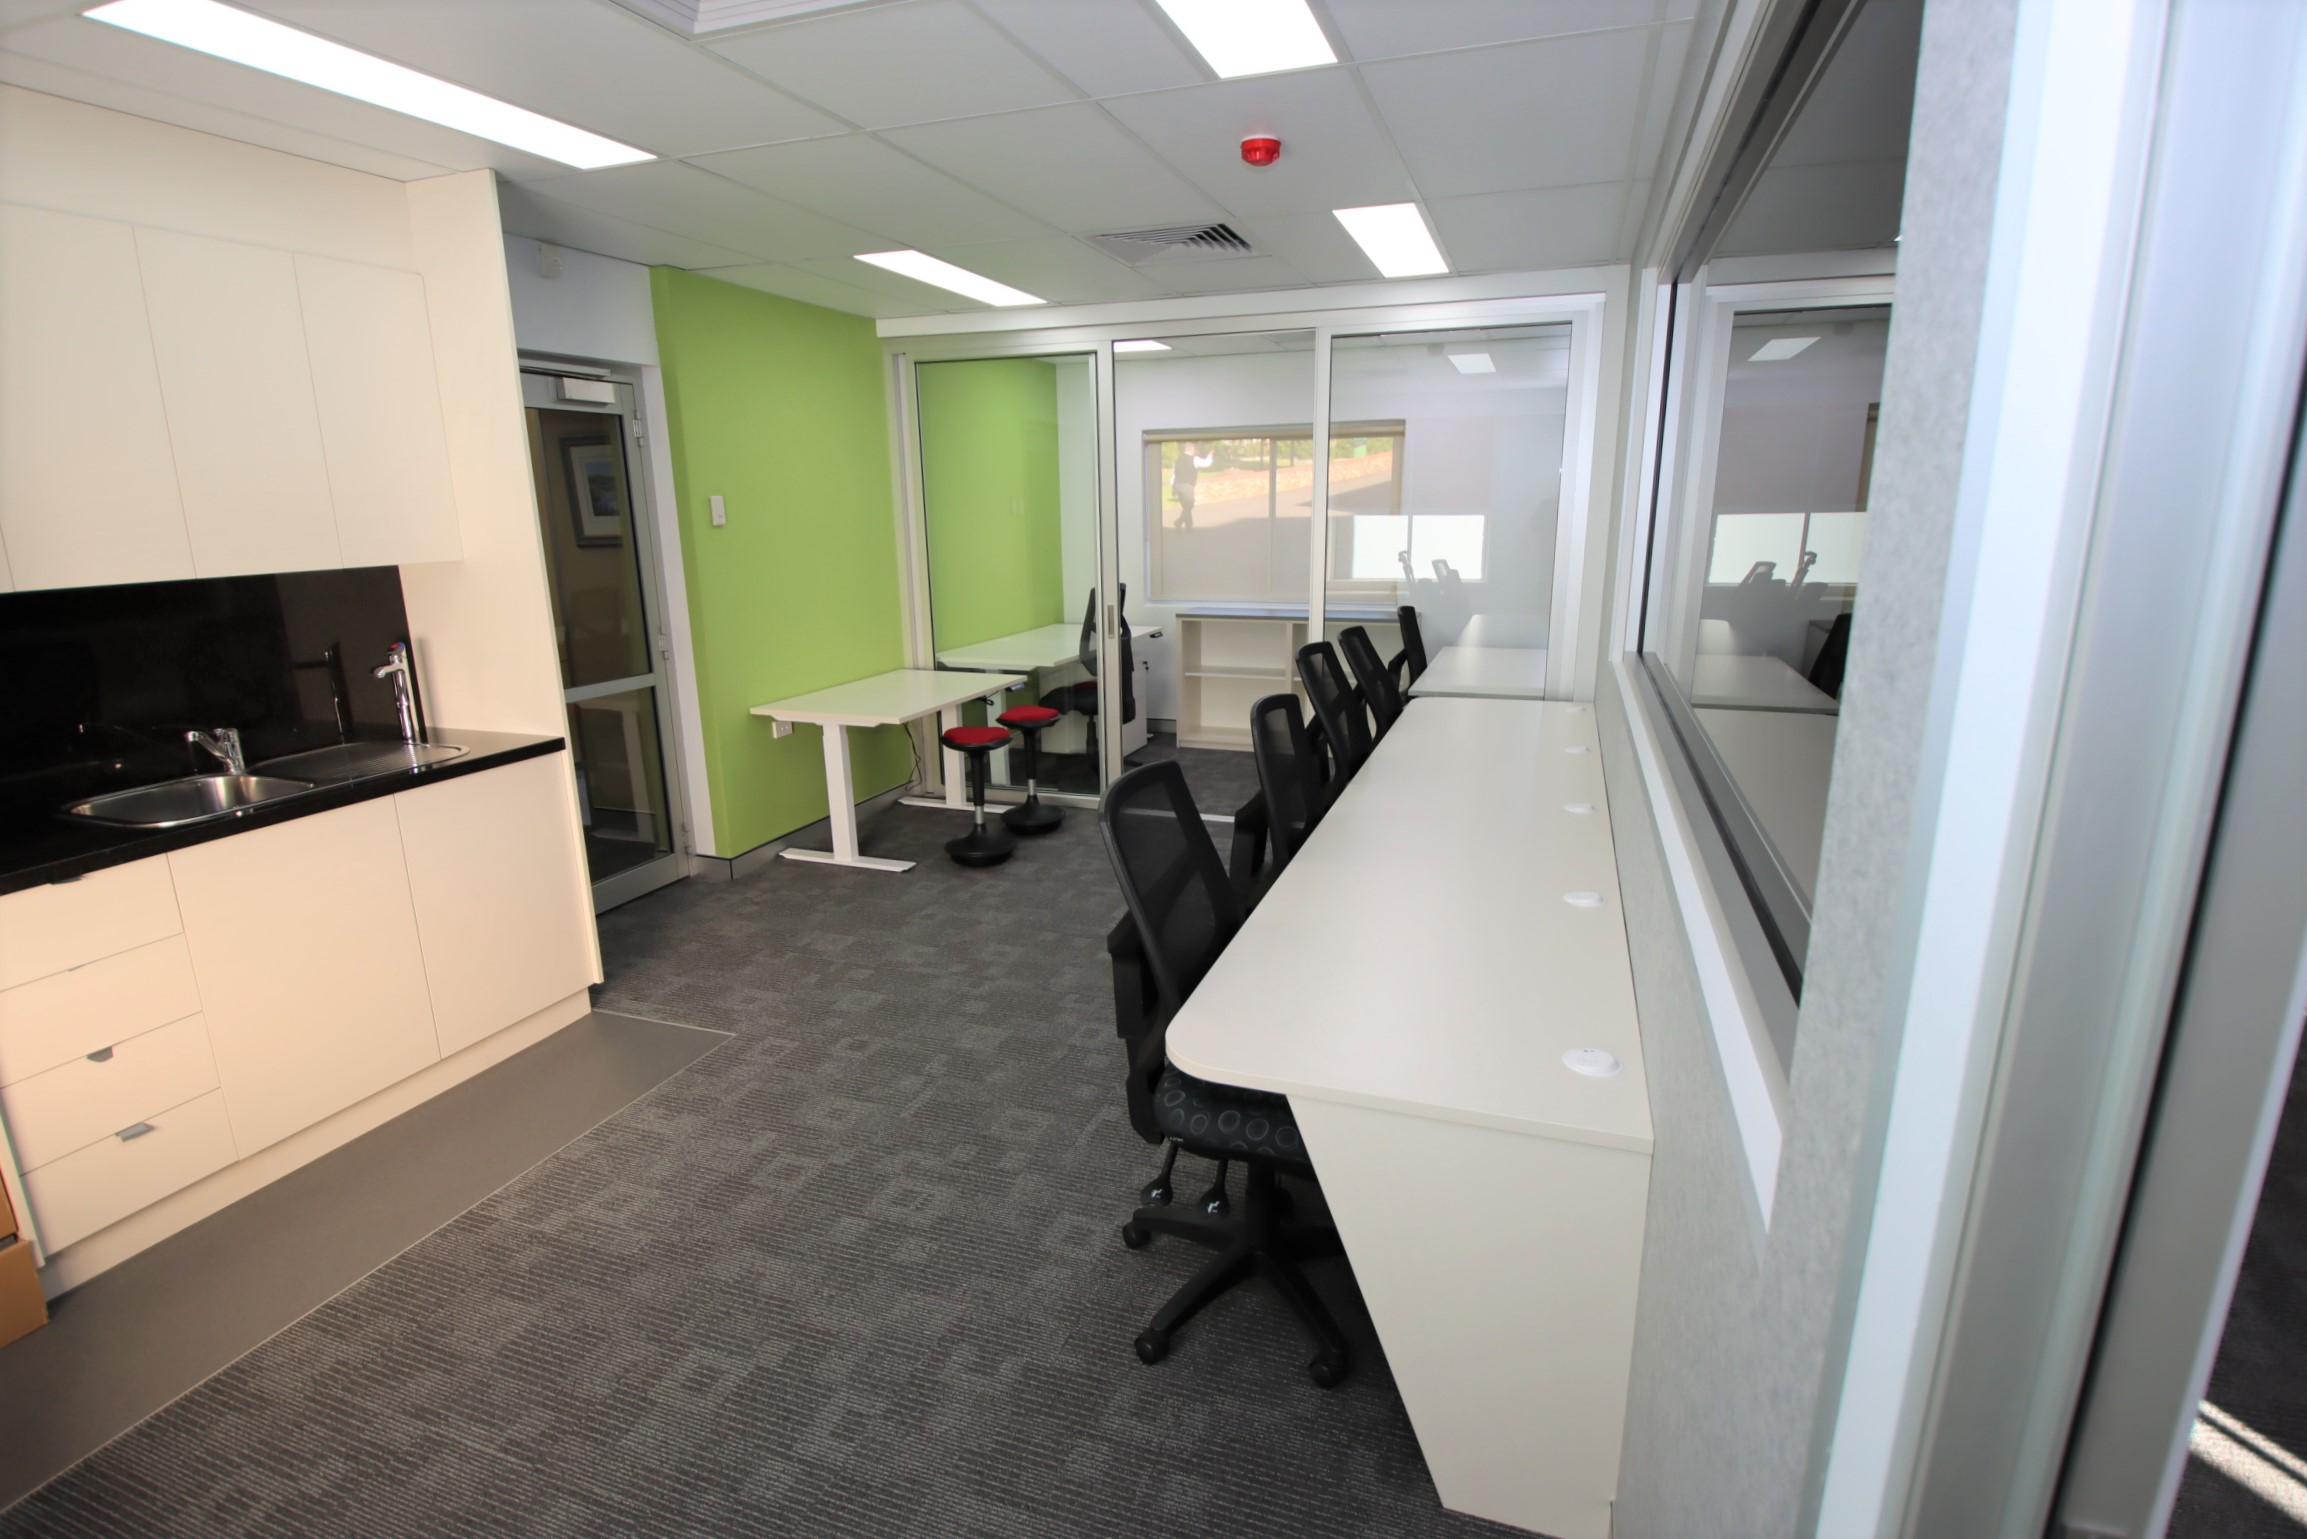 Student and Adult Work Area